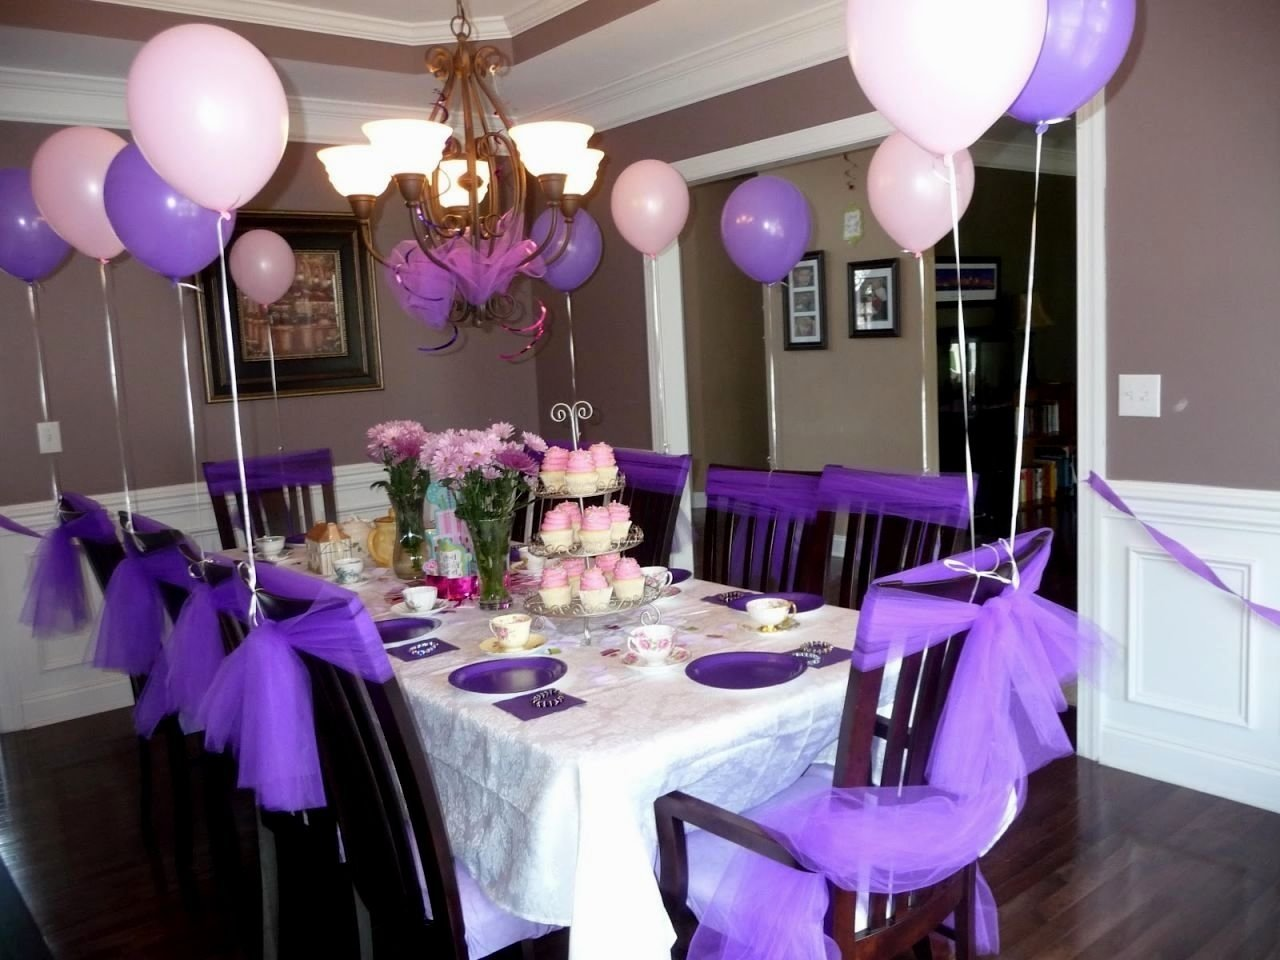 10 Pretty Birthday Party Decoration Ideas For Adults party ideas adults theme food college coriver homes 86881 1 2021